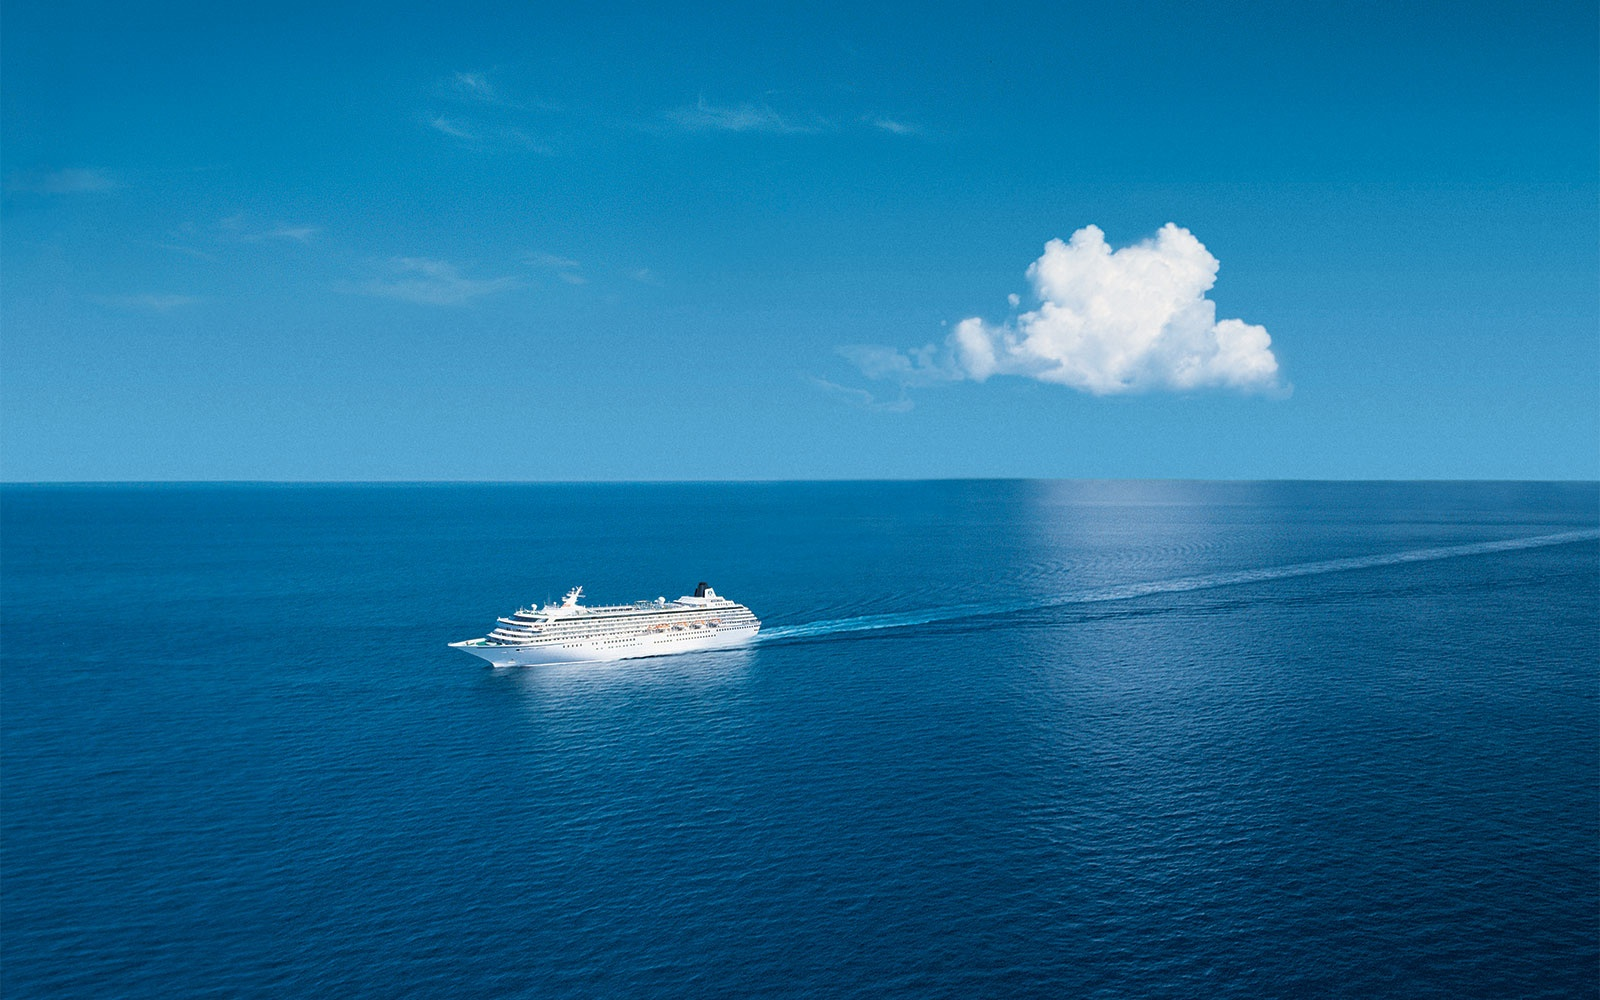 No. 1 Large-Ship Ocean Cruise Line: Crystal Cruises